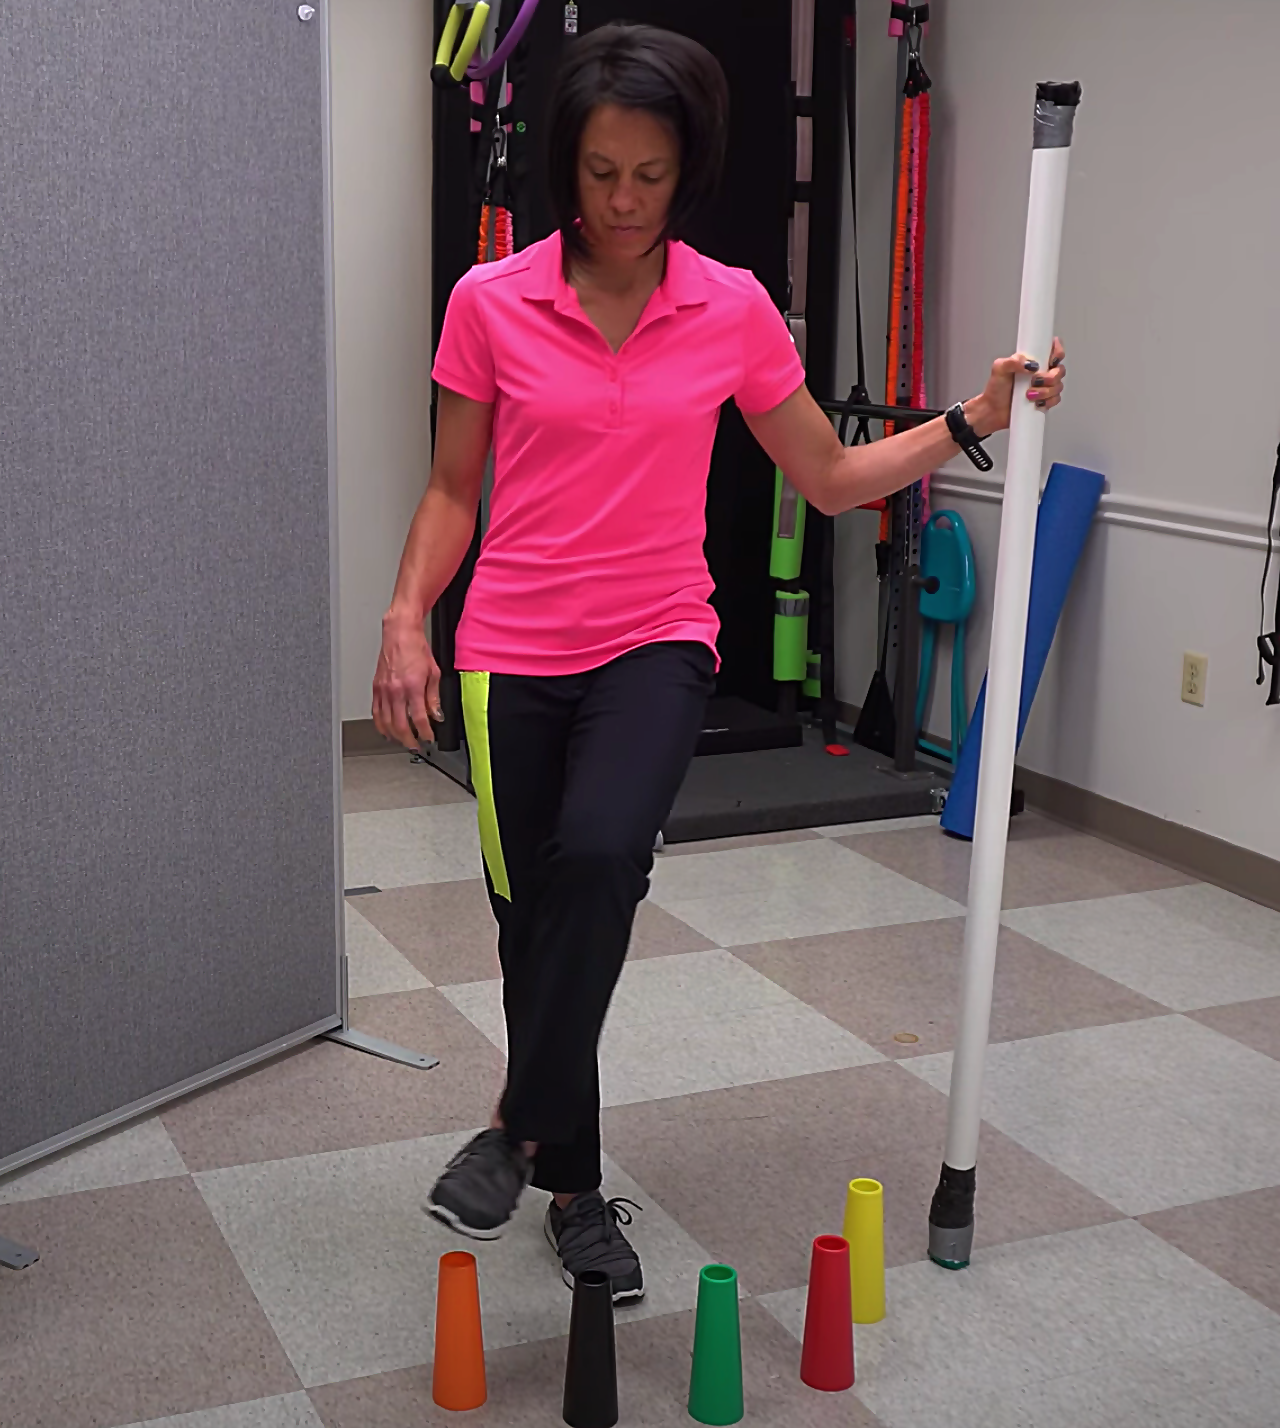 advanced walking exercise with stacking cones and crossing midline